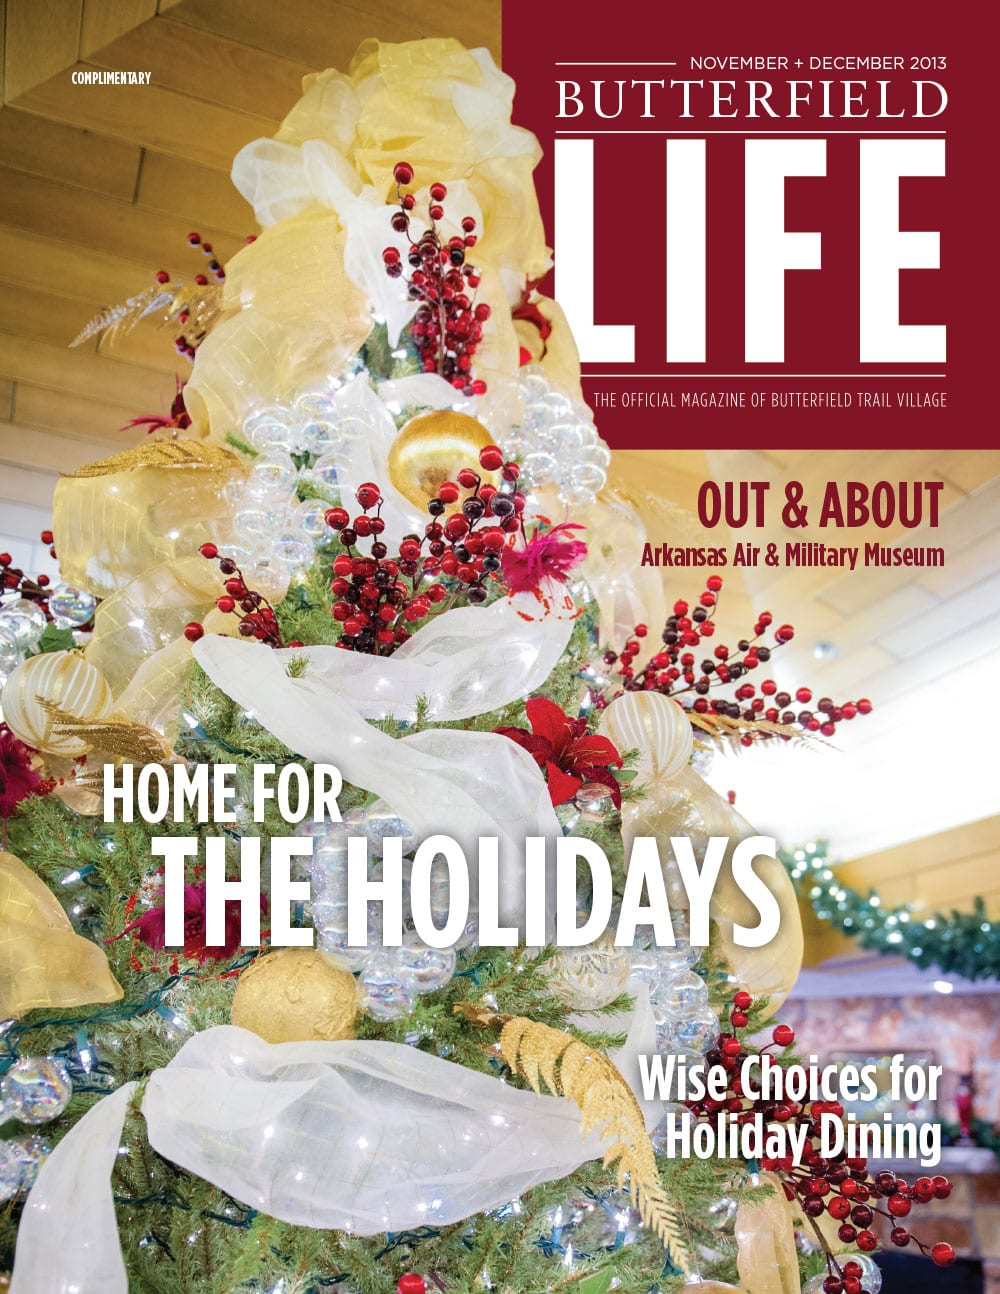 butterfield-life_nov-dec2013_cover